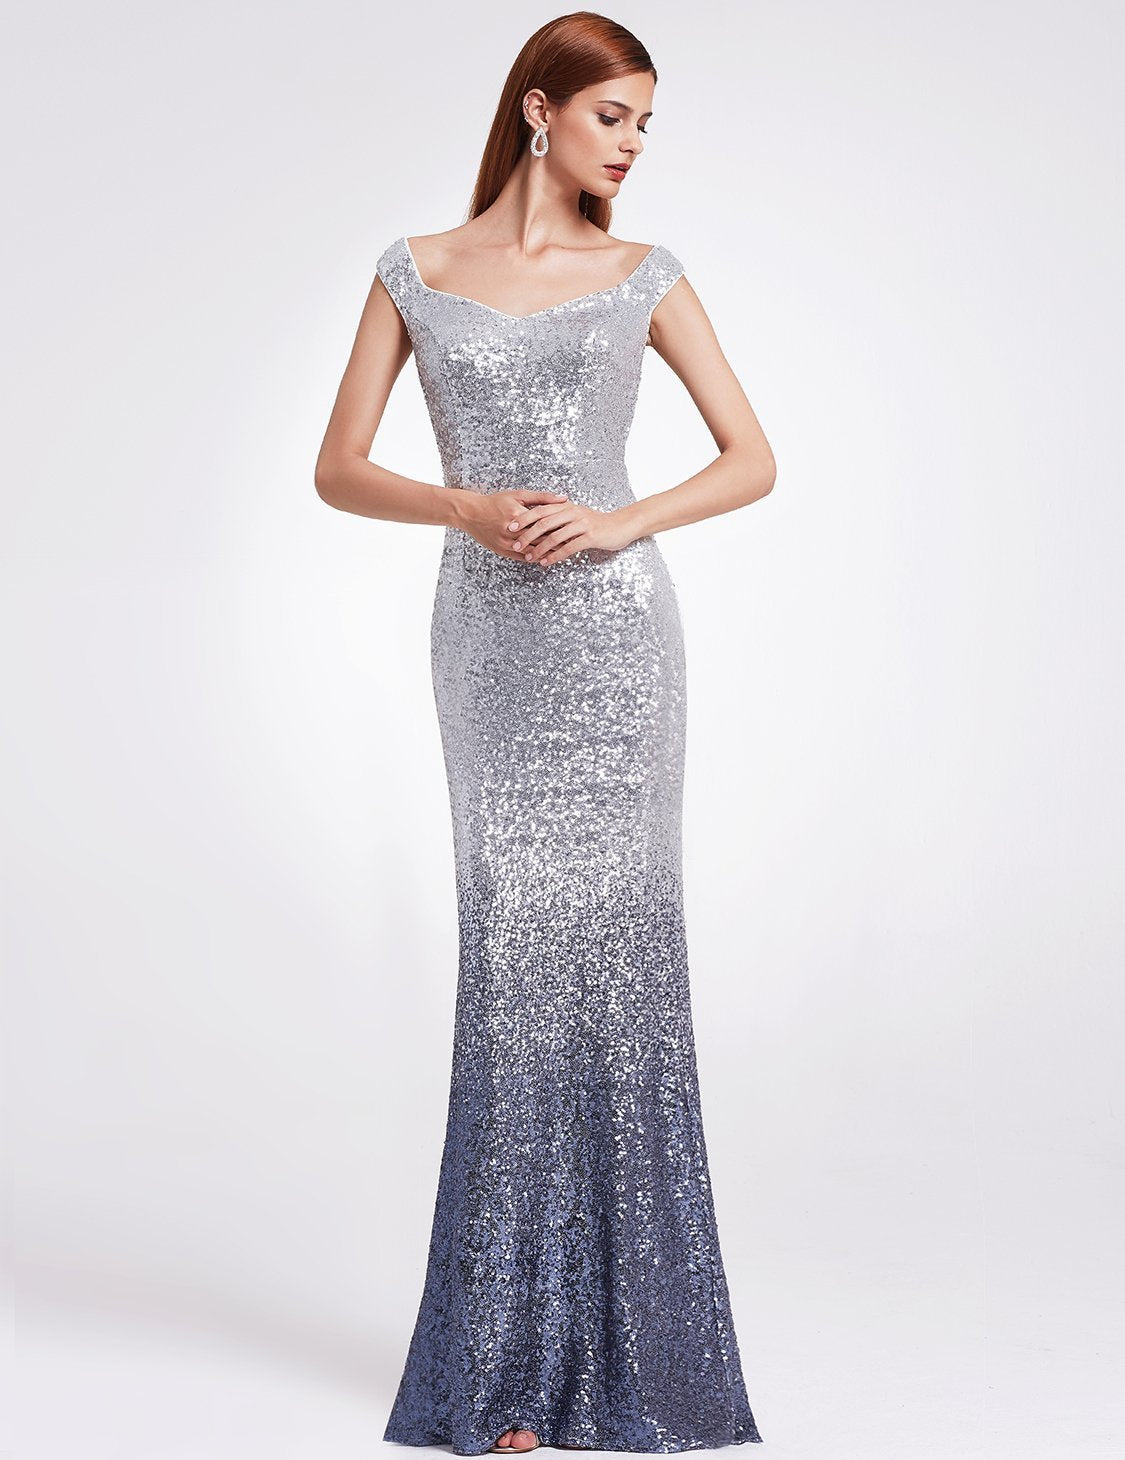 Rosy Oversized Bow Applique Evening Party Gown Wholesale. V-Neck Women  Elegant Sequin Mermaid Maxi Evening Party Gown Dress .